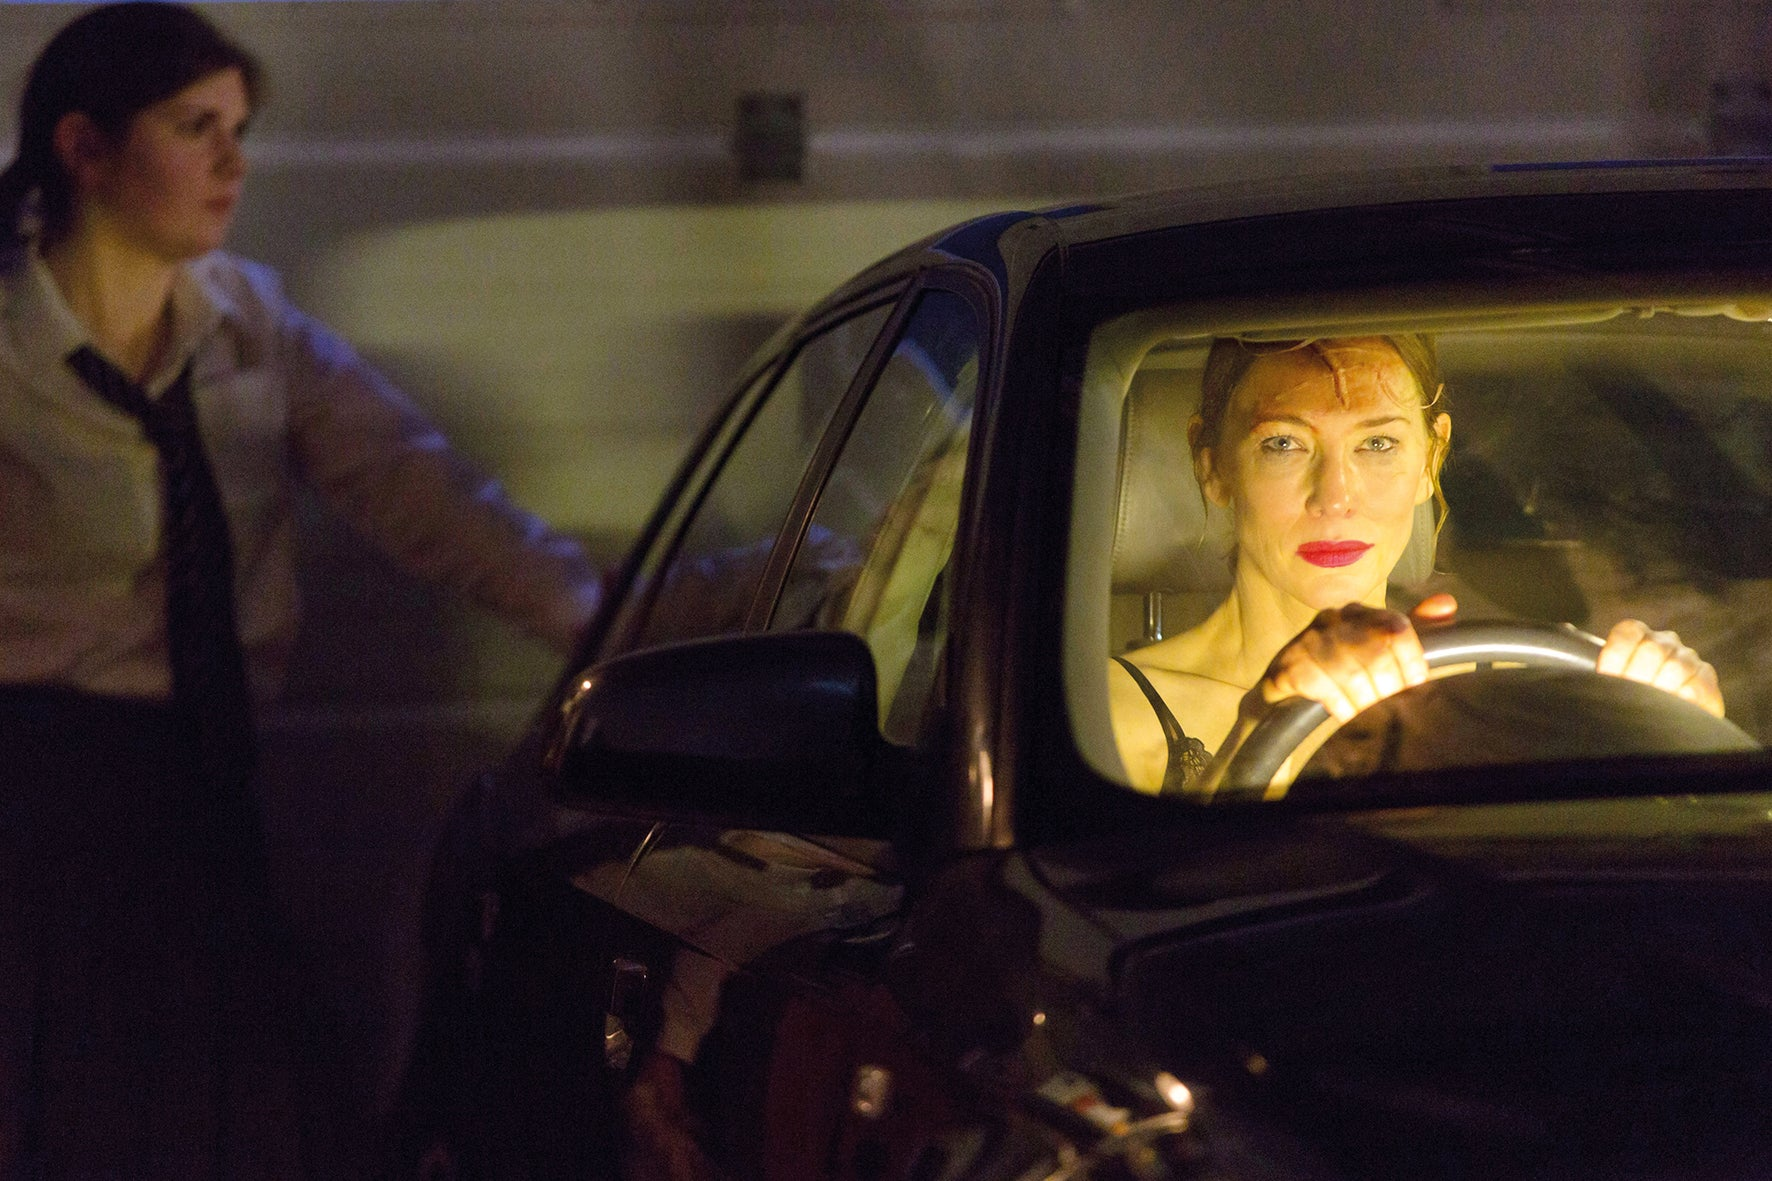 A-lister with a dildo: Cate Blanchett at the National Theatre